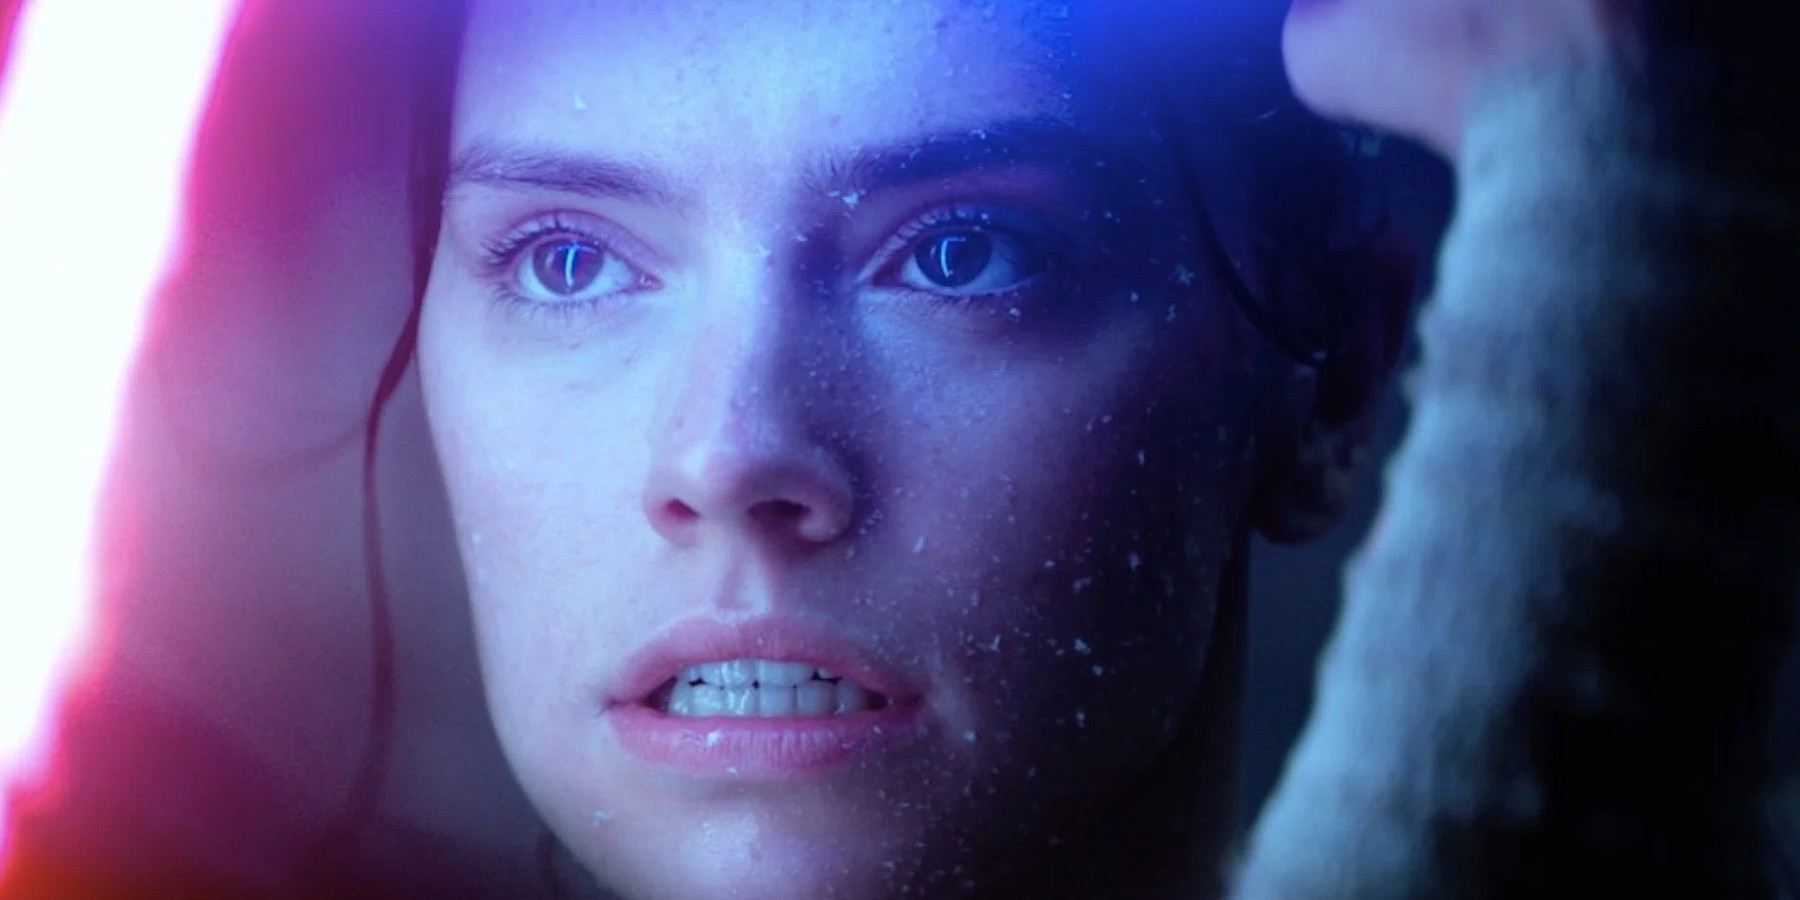 The Force Speaks to Rey During Her Duel With Kylo Ren in Star Wars The Force Awakens